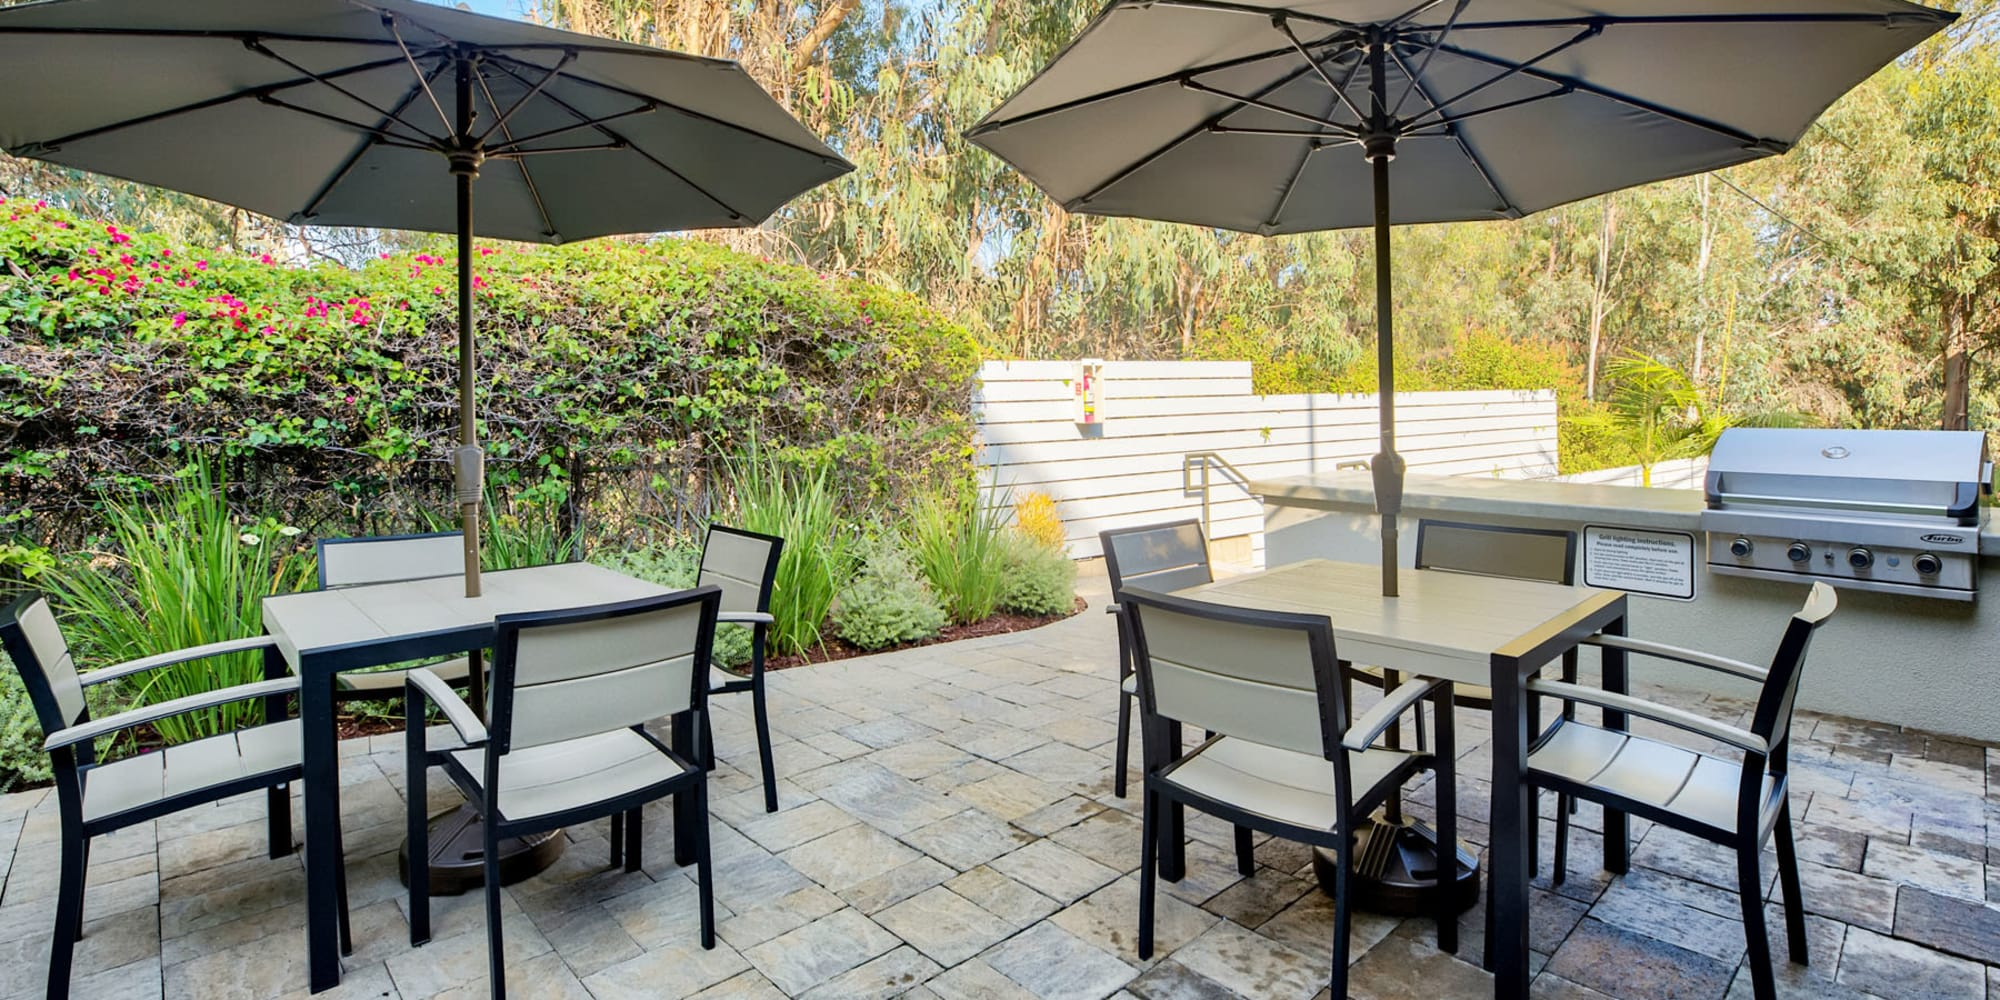 Shaded seating at the barbecue area with gas grills at Casa Granada in Los Angeles, California